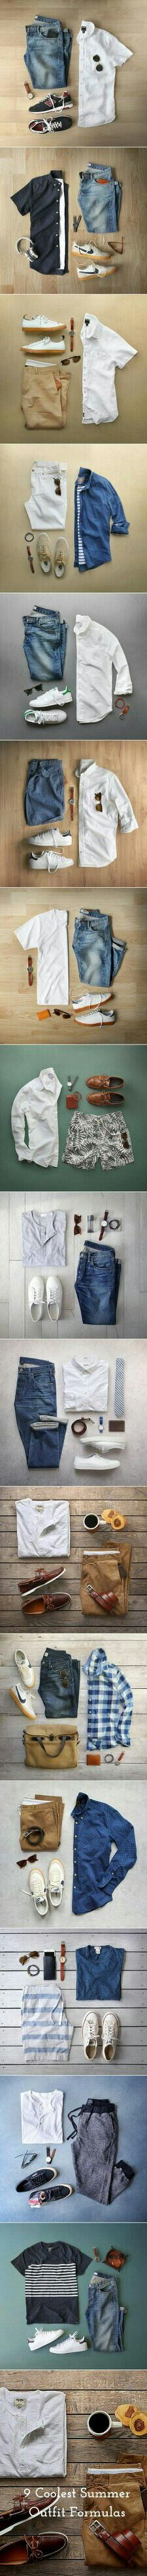 9 Summer Casual Outfit Ideas For Men.